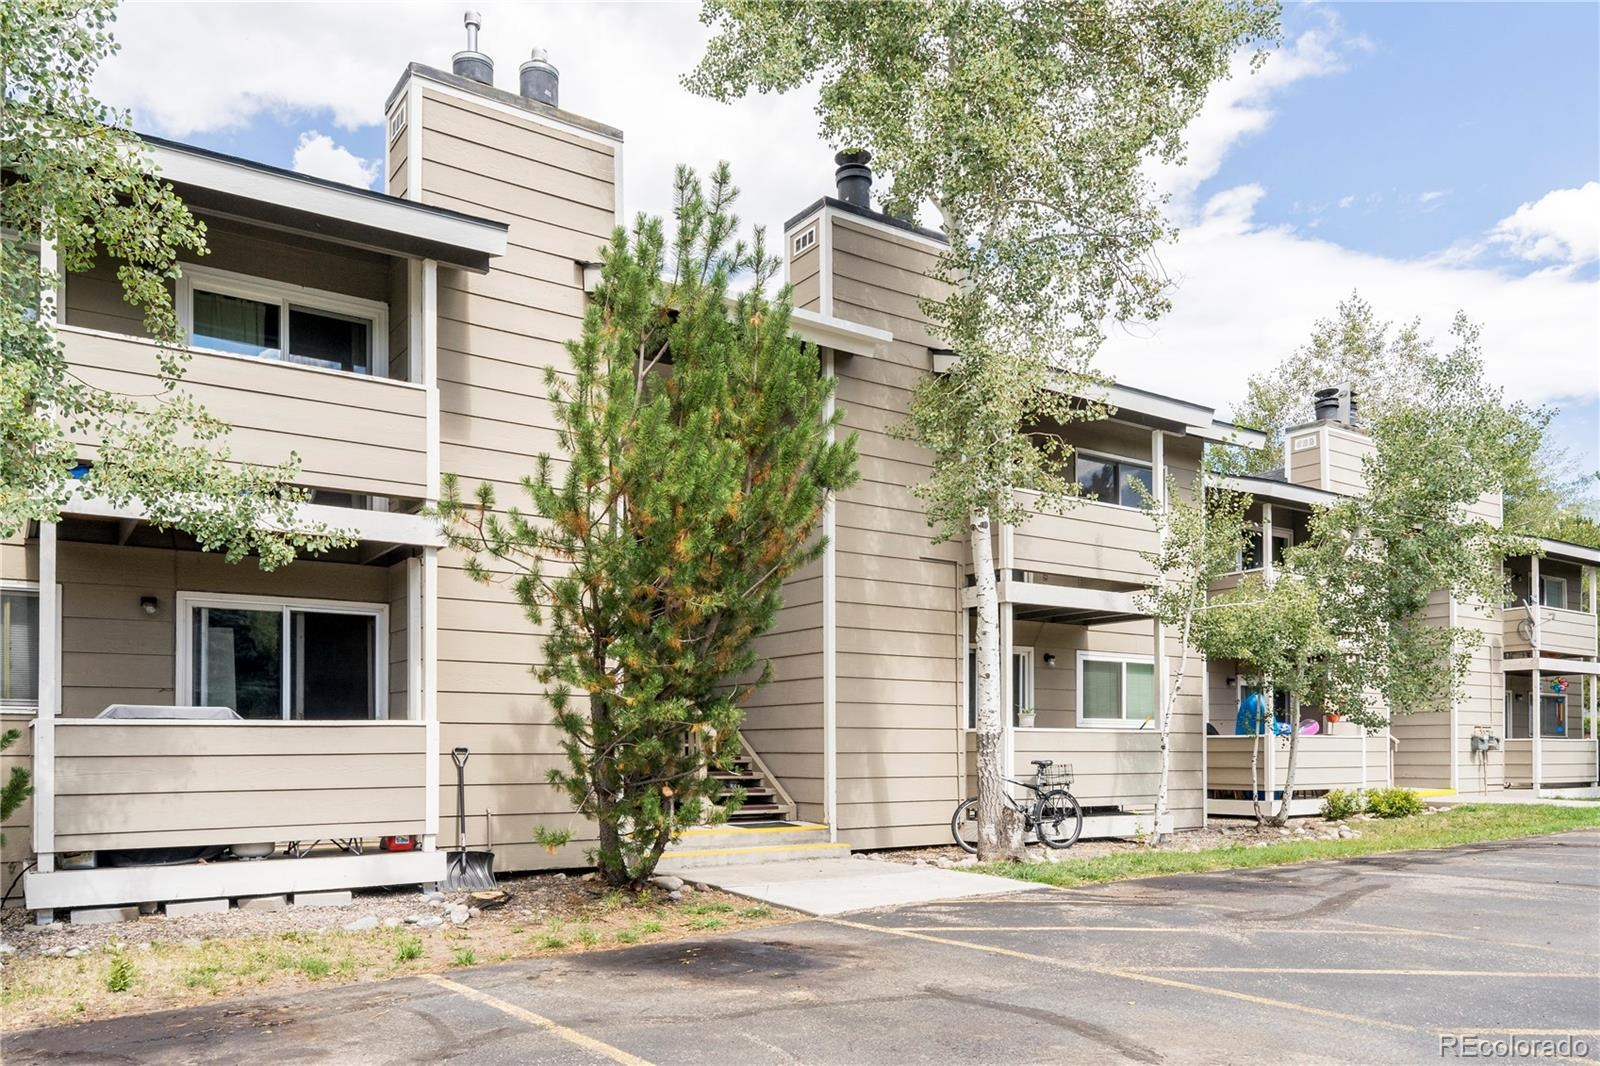 MLS# 5203269 - 14 - 1320 Athens Plaza #4, Steamboat Springs, CO 80487